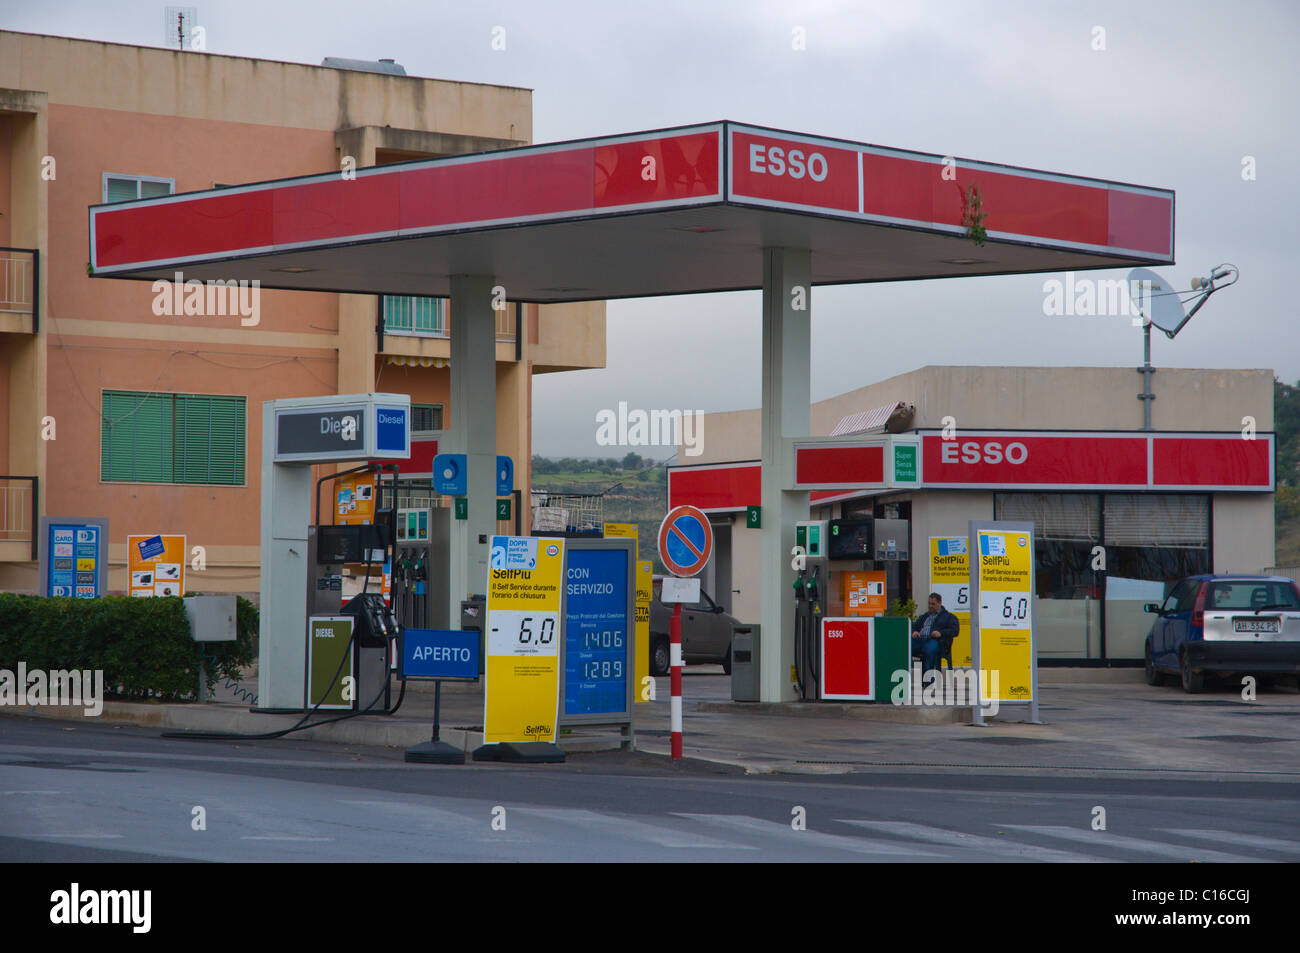 esso service filling gas petrol station noto sicily italy europe stock photo royalty free image. Black Bedroom Furniture Sets. Home Design Ideas